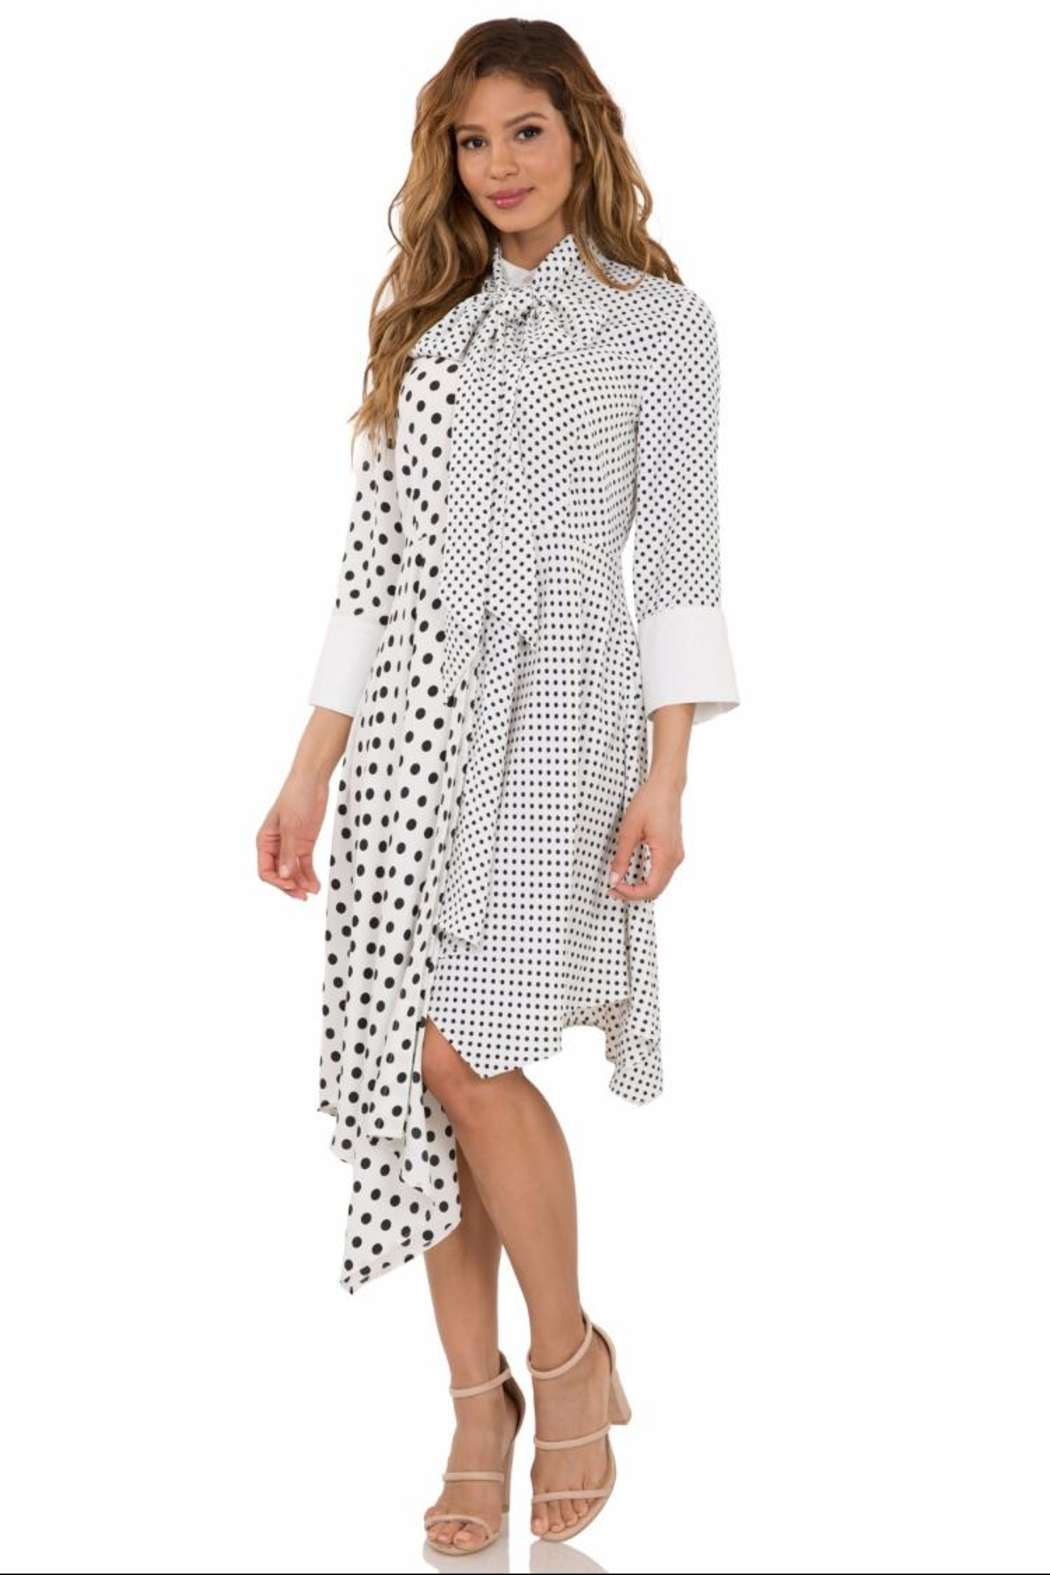 81a96a0b317 cq by cq Long-Sleeve Polkadot Dress from Los Angeles by Chikas ...